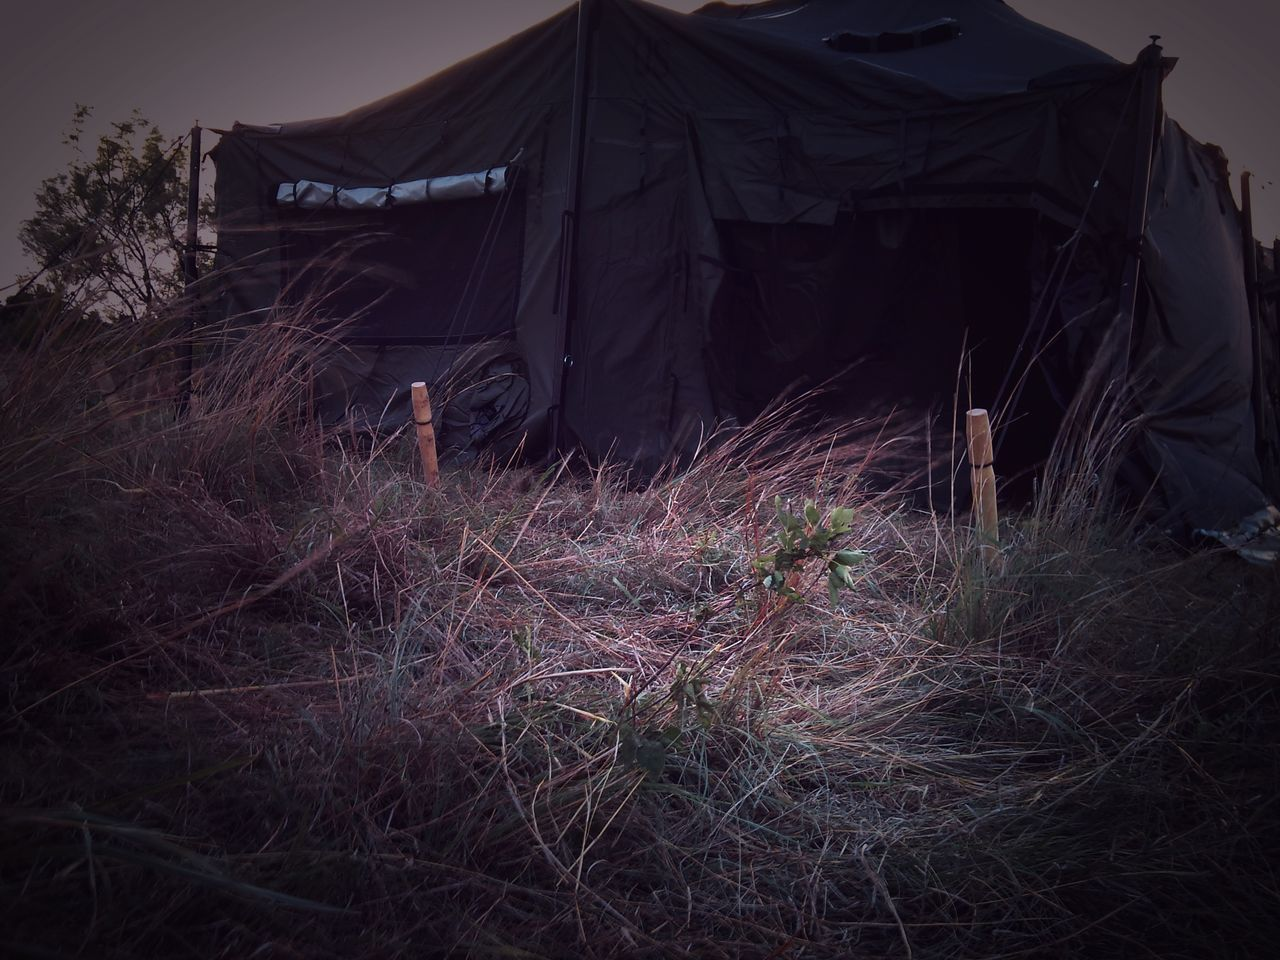 Illuminated No People Tree Outdoors Day Tent Field Problem Grassy Field Army Life Army Camp Field Problem Sunset Back To Basics  Simple Life Roughing It Soldier Living No Ac Training Shelter Survival Pitch Tent Field This Sux Hot Outside